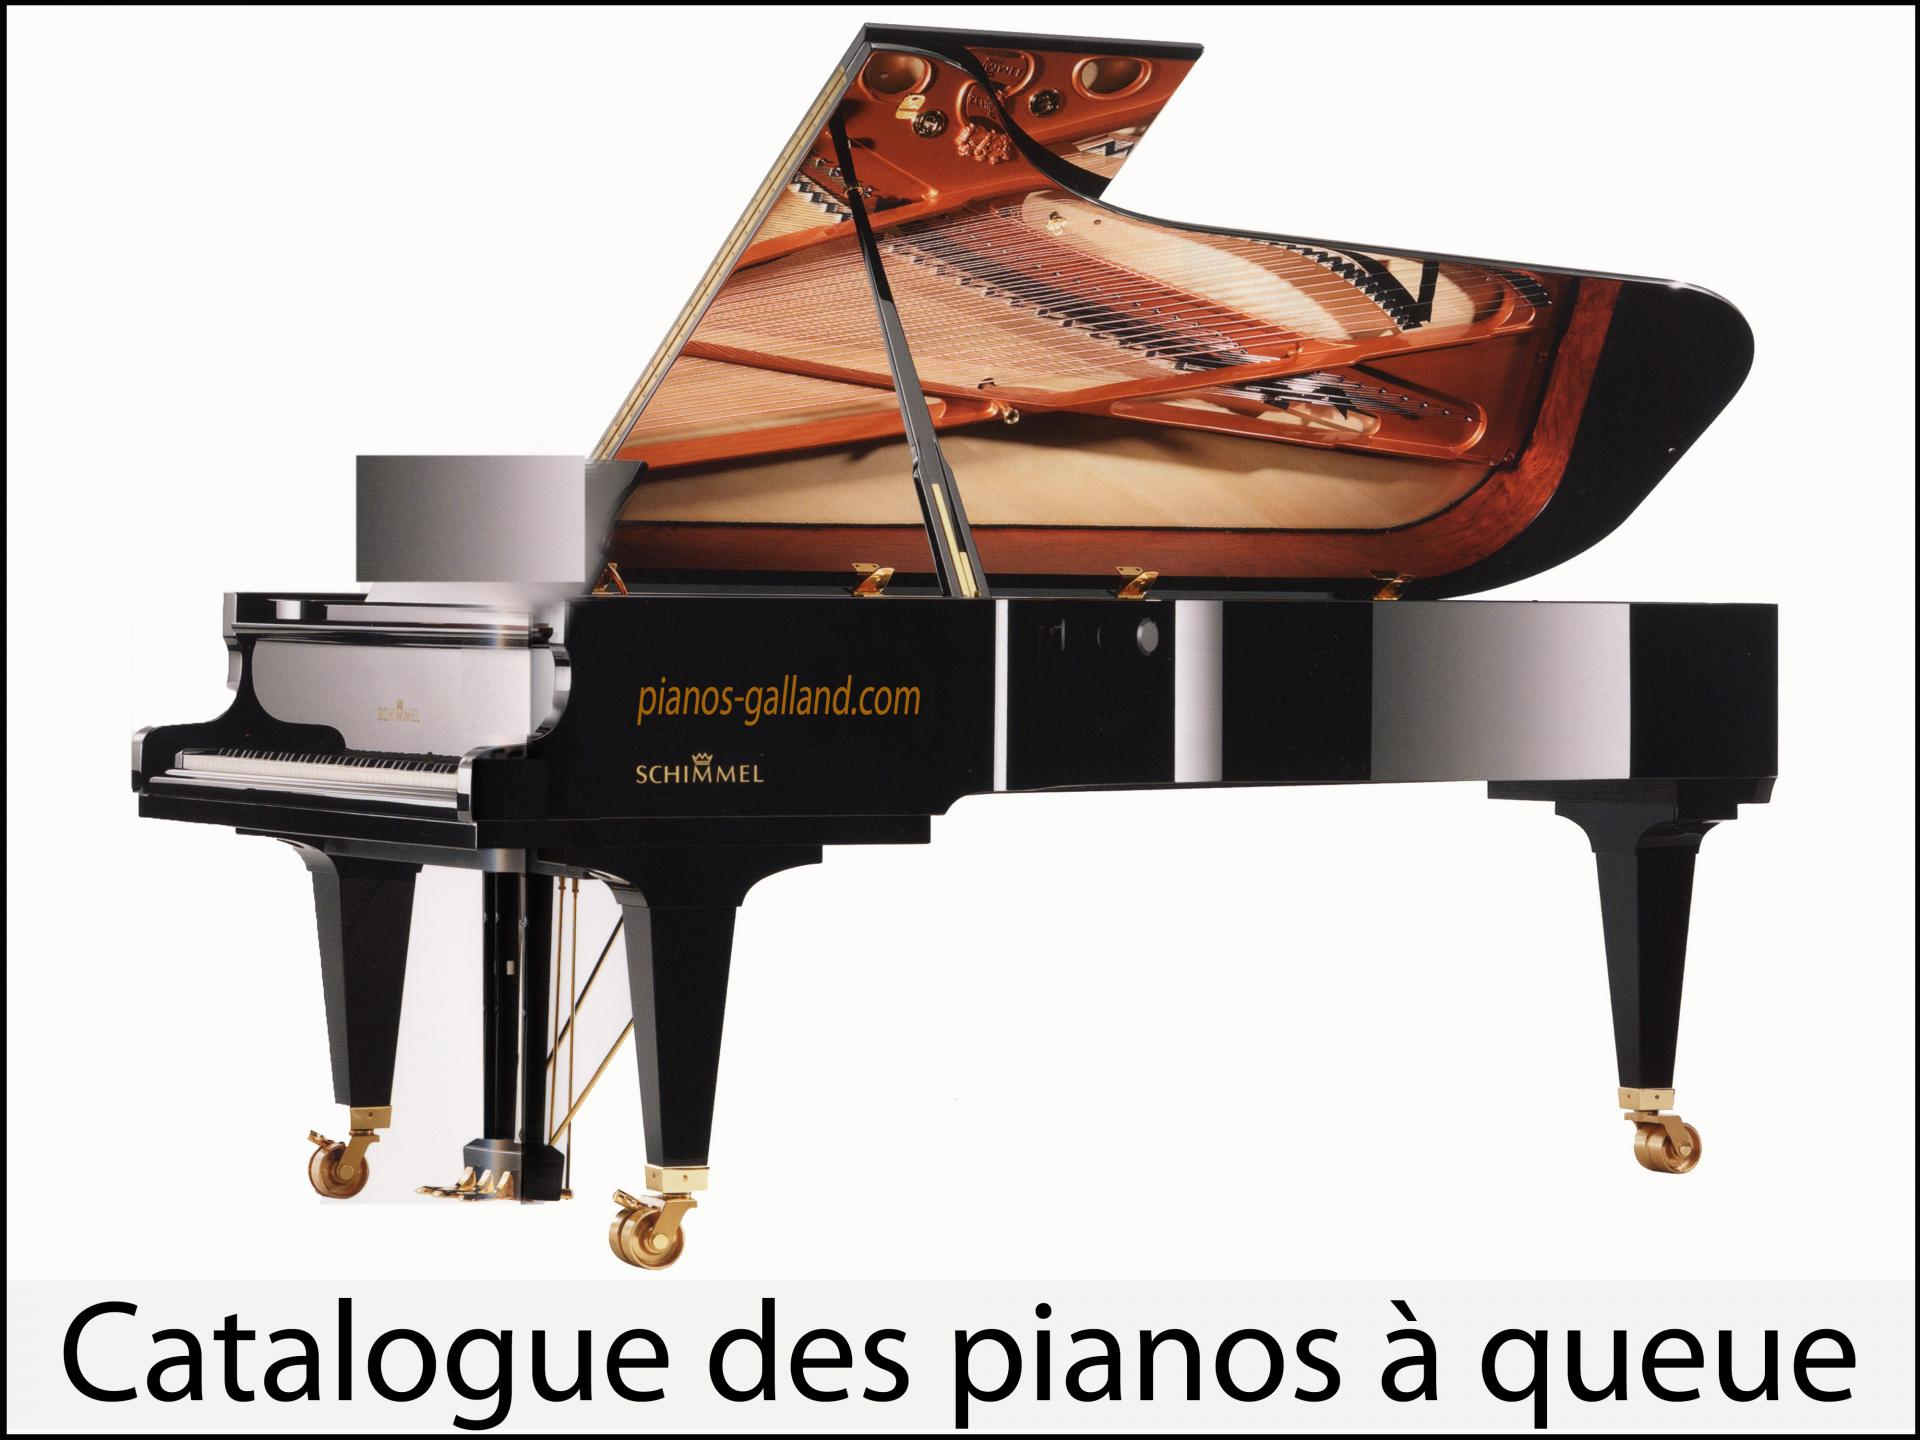 Acceuil pianos a queue